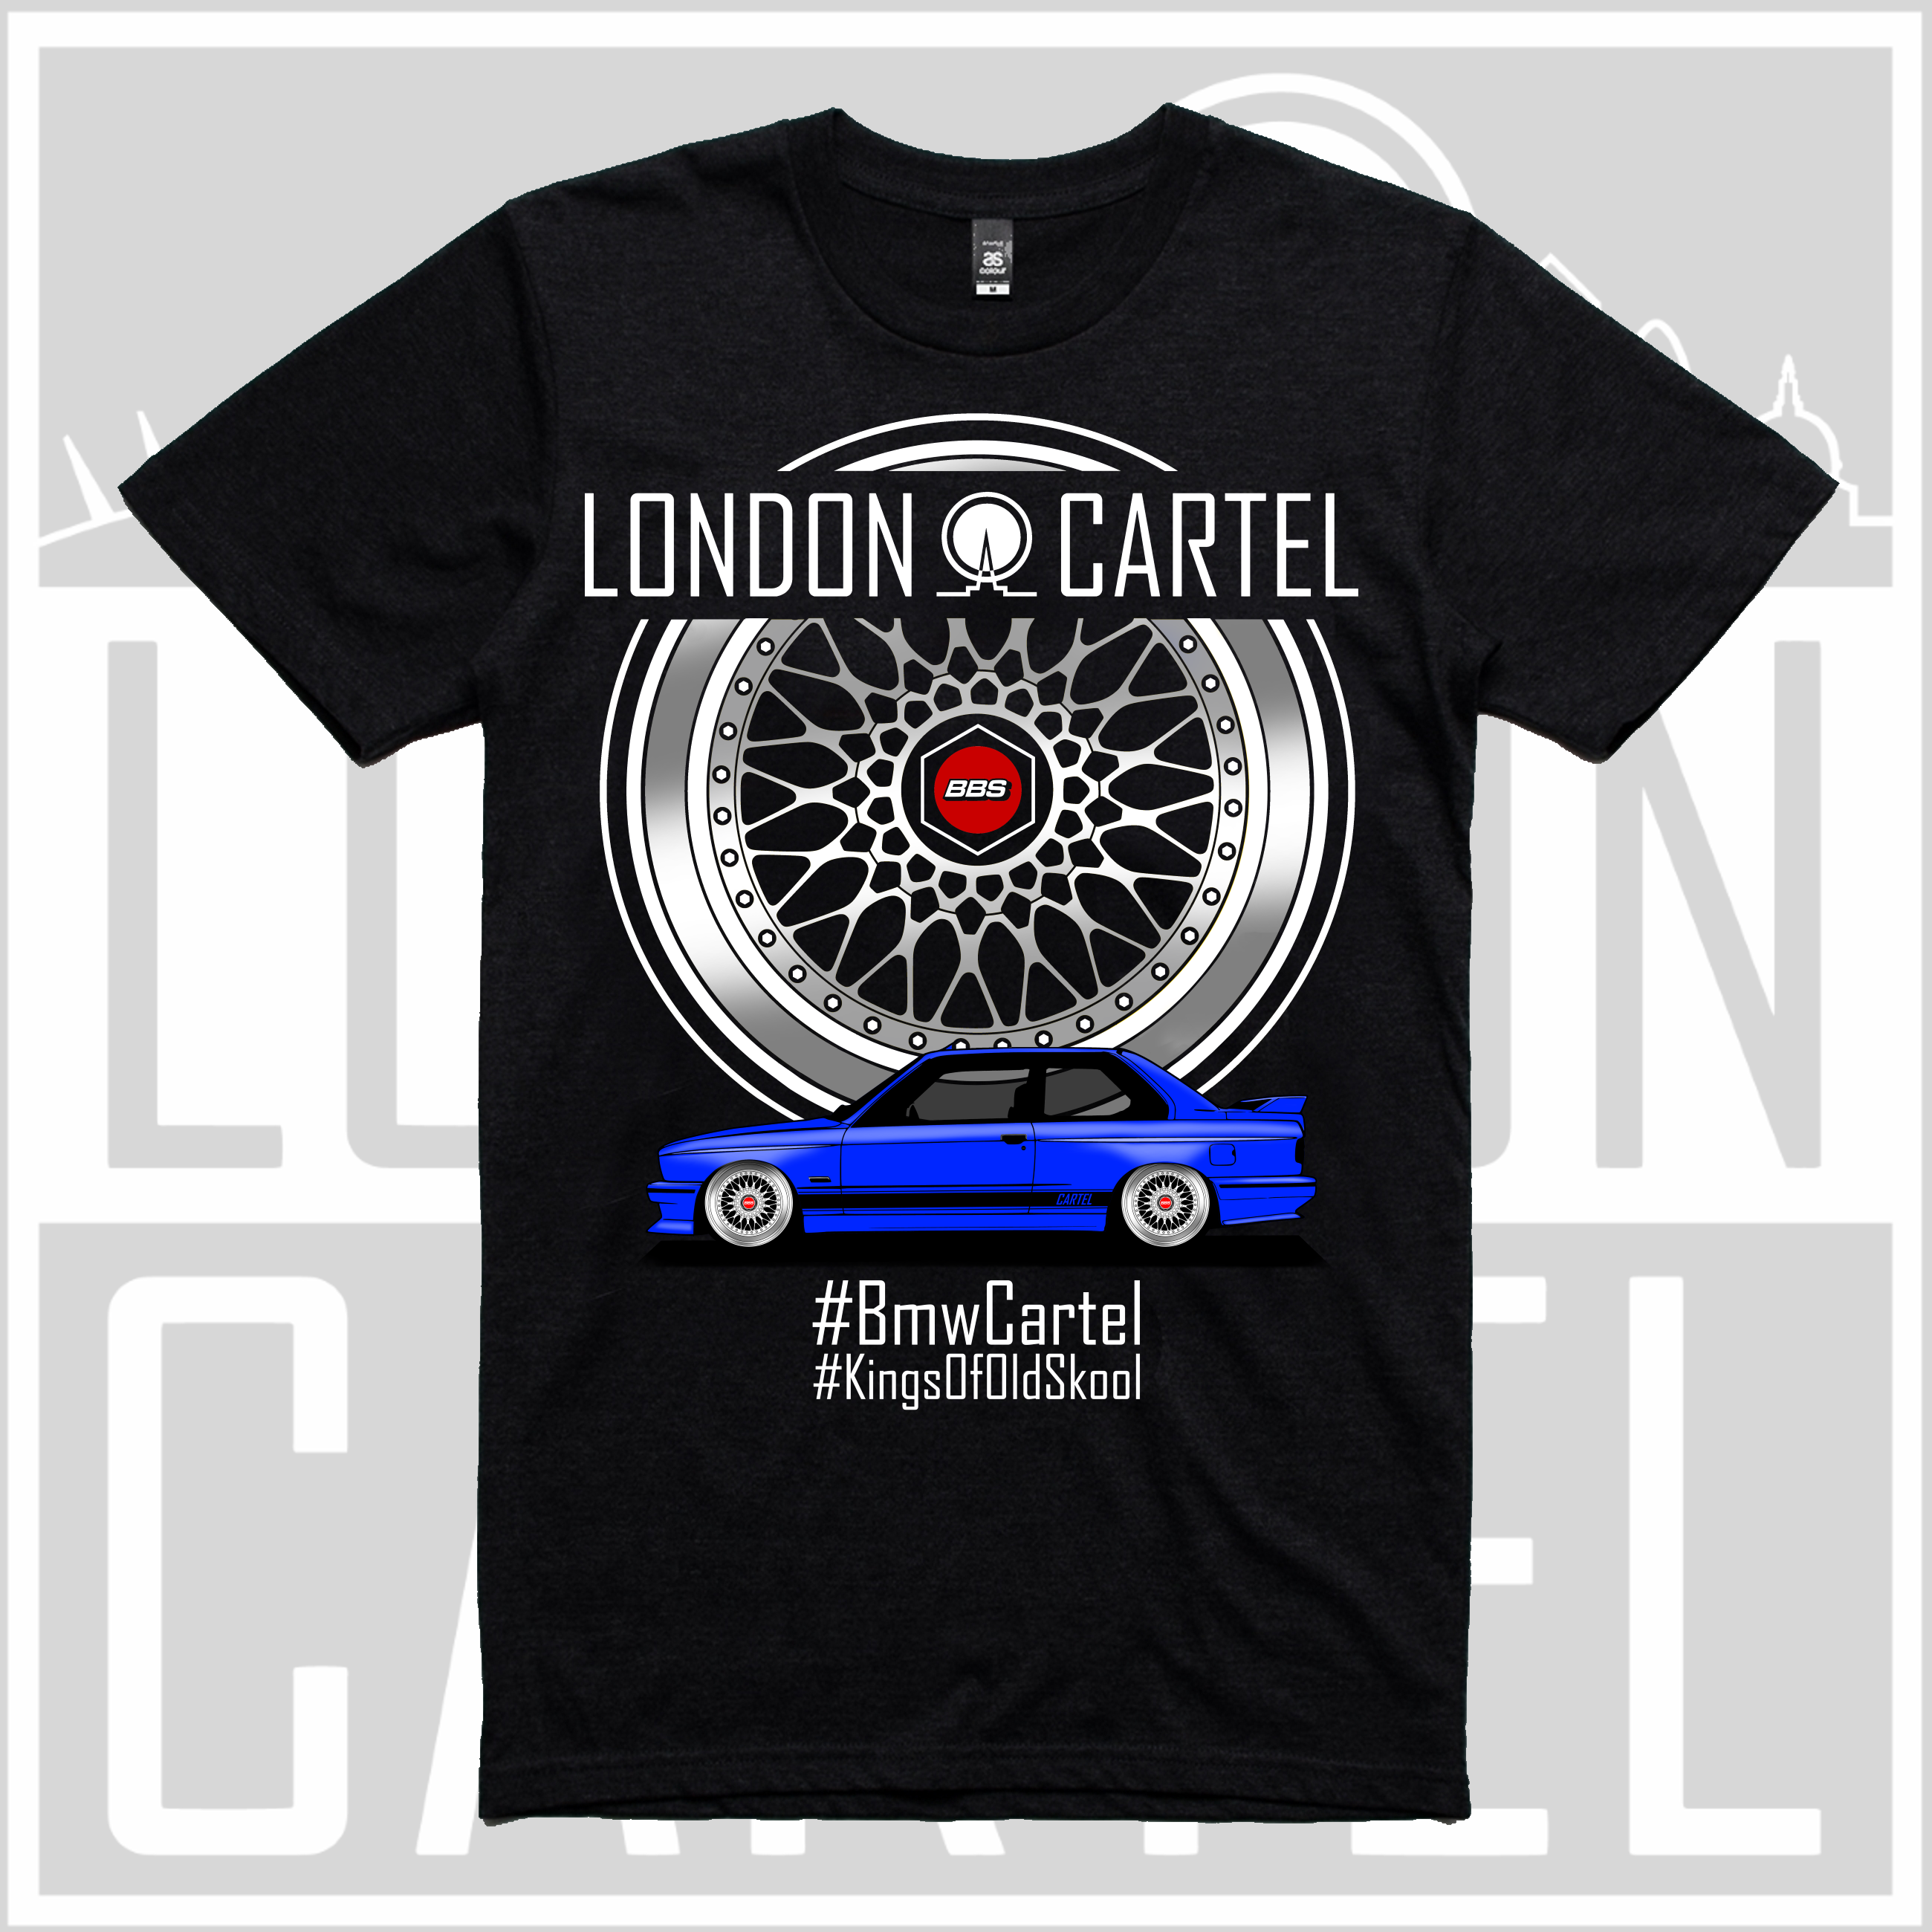 bmw cartel t shirt lct009 london cartel. Black Bedroom Furniture Sets. Home Design Ideas